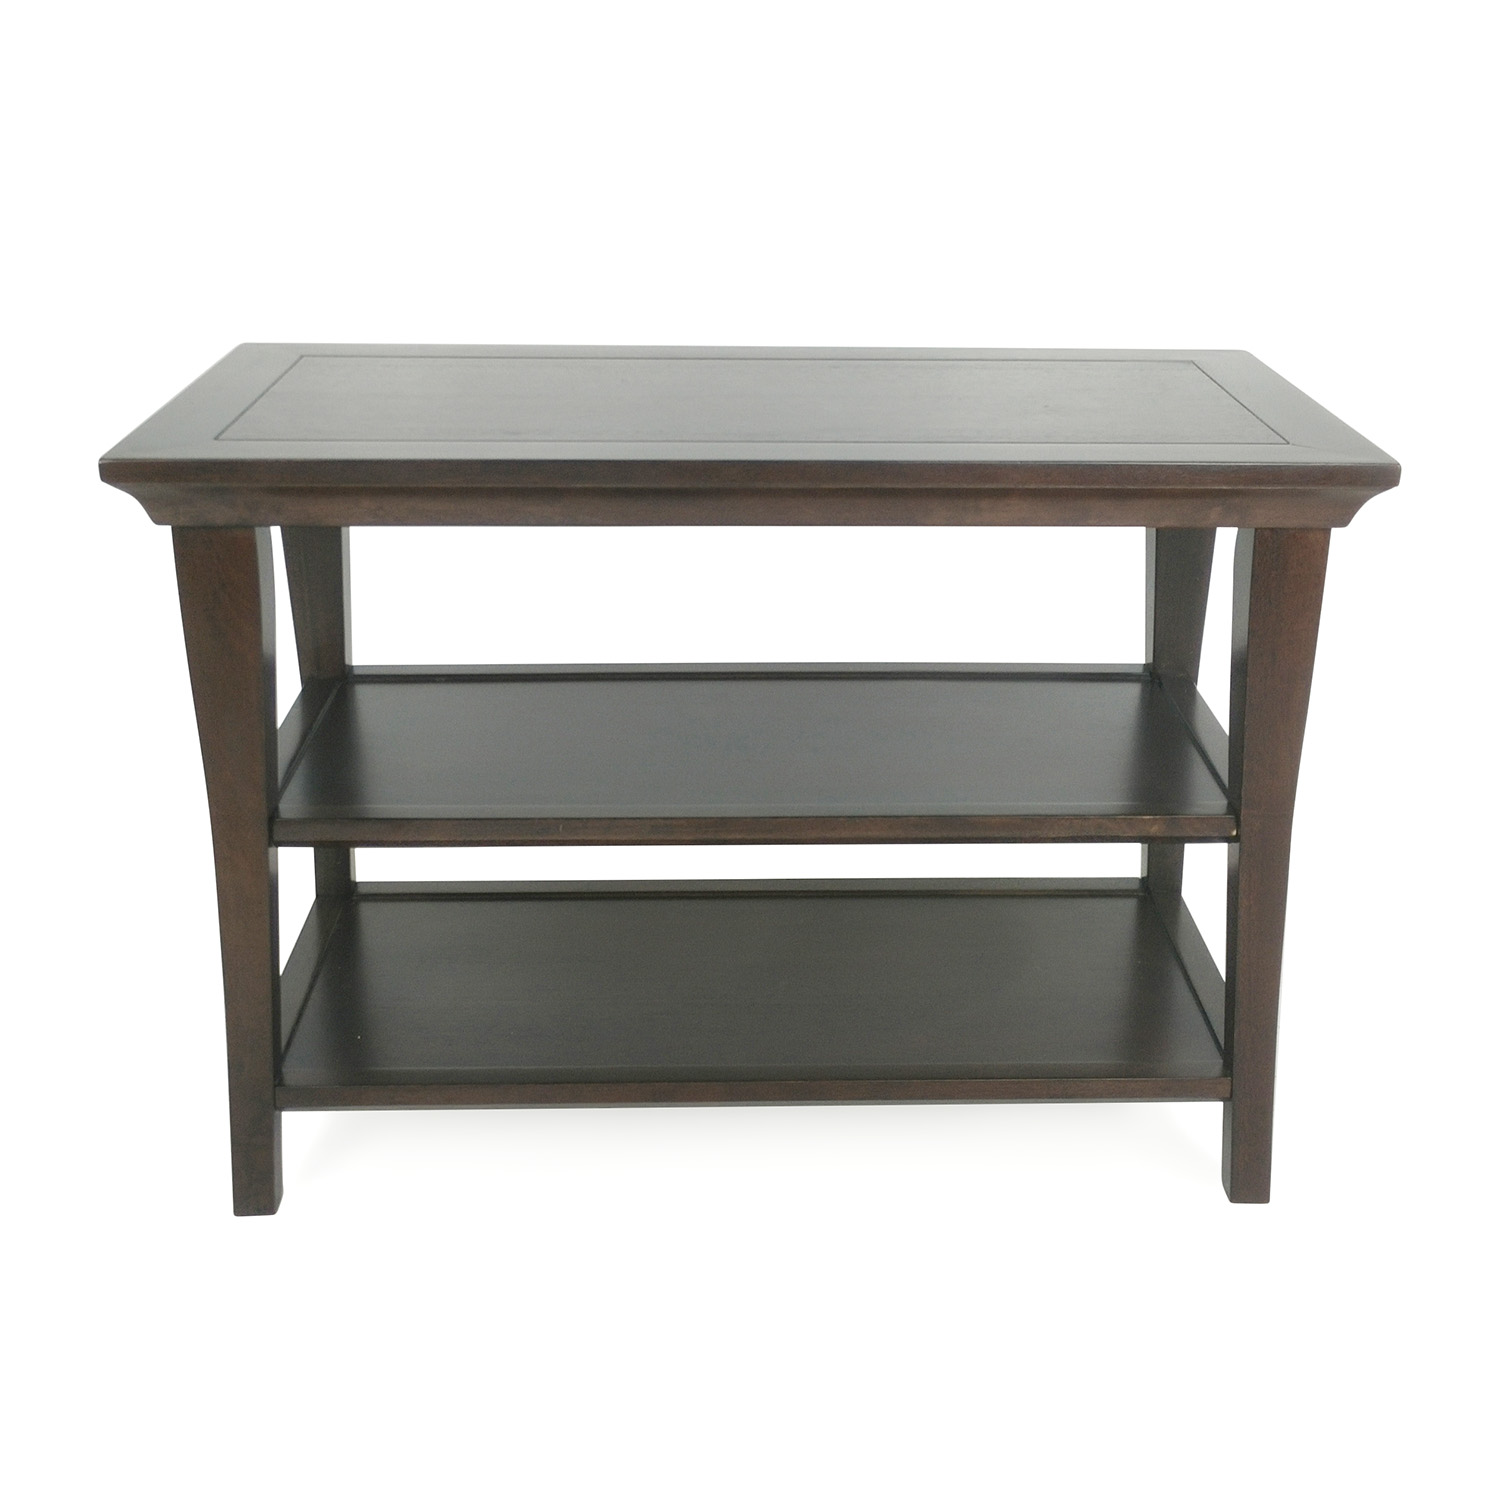 Pottery Barn Pottery Barn Table with Shelves coupon